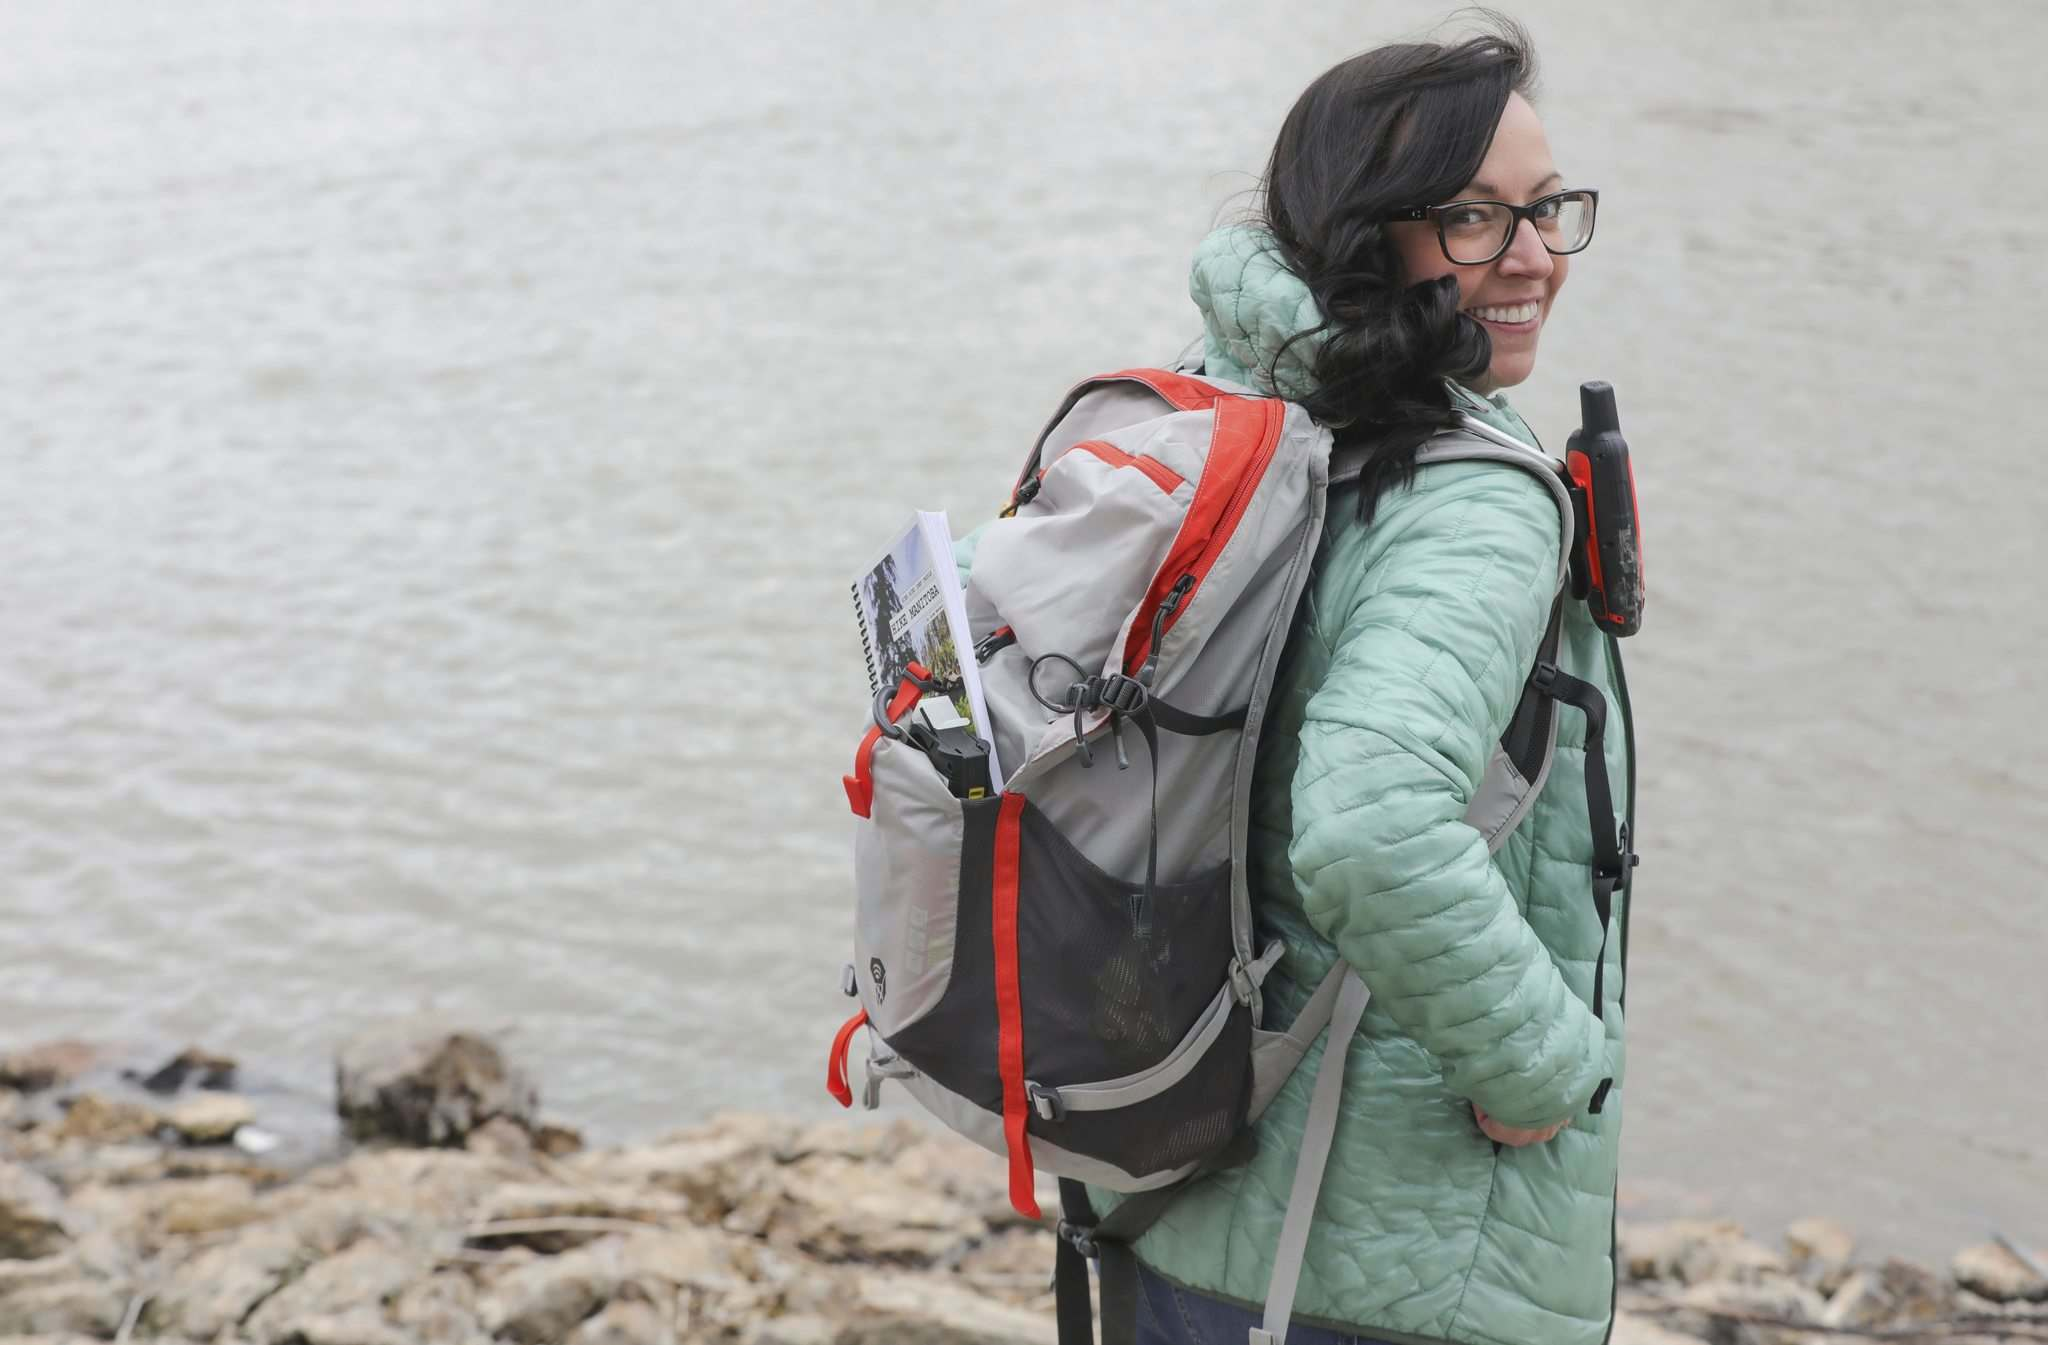 RUTH BONNEVILLE / WINNIPEG FREE PRESS</p><p>Jaime Manness is the creator of Hike Manitoba, a small business dedicated to sharing recommendations and best practices for hiking and exploring local wilderness. </p></p>